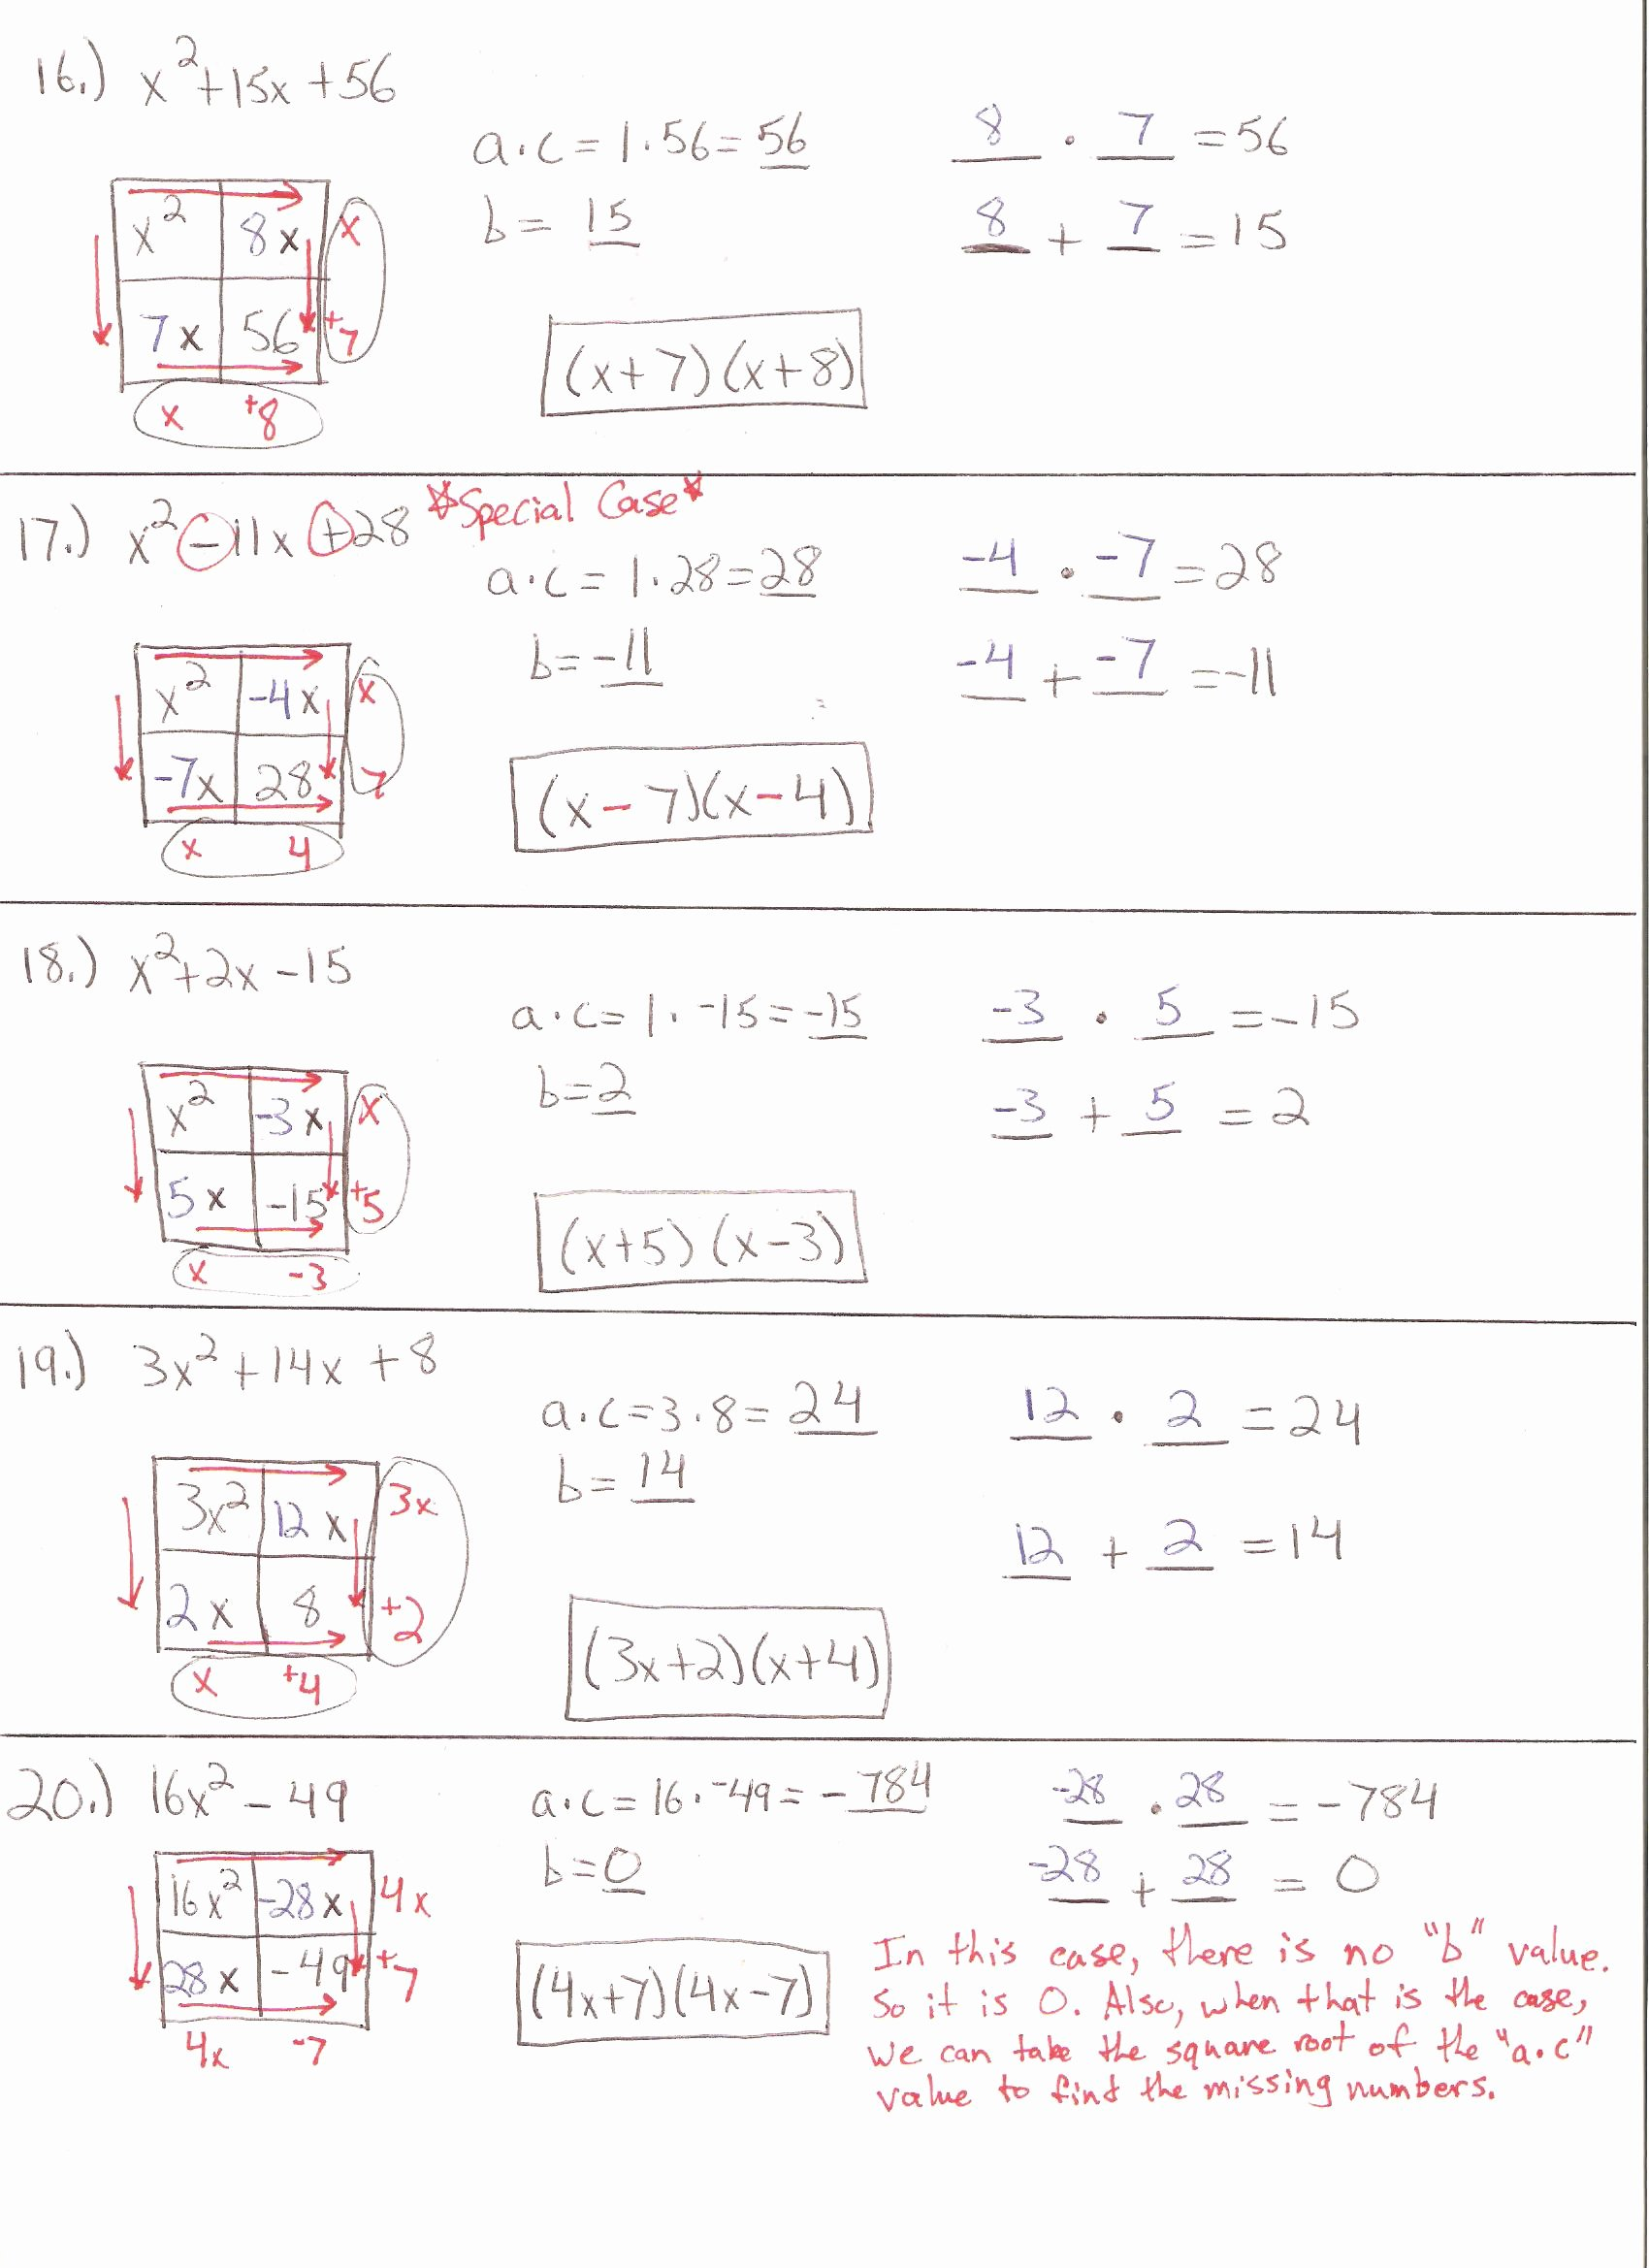 50 Algebra 2 Review Worksheet